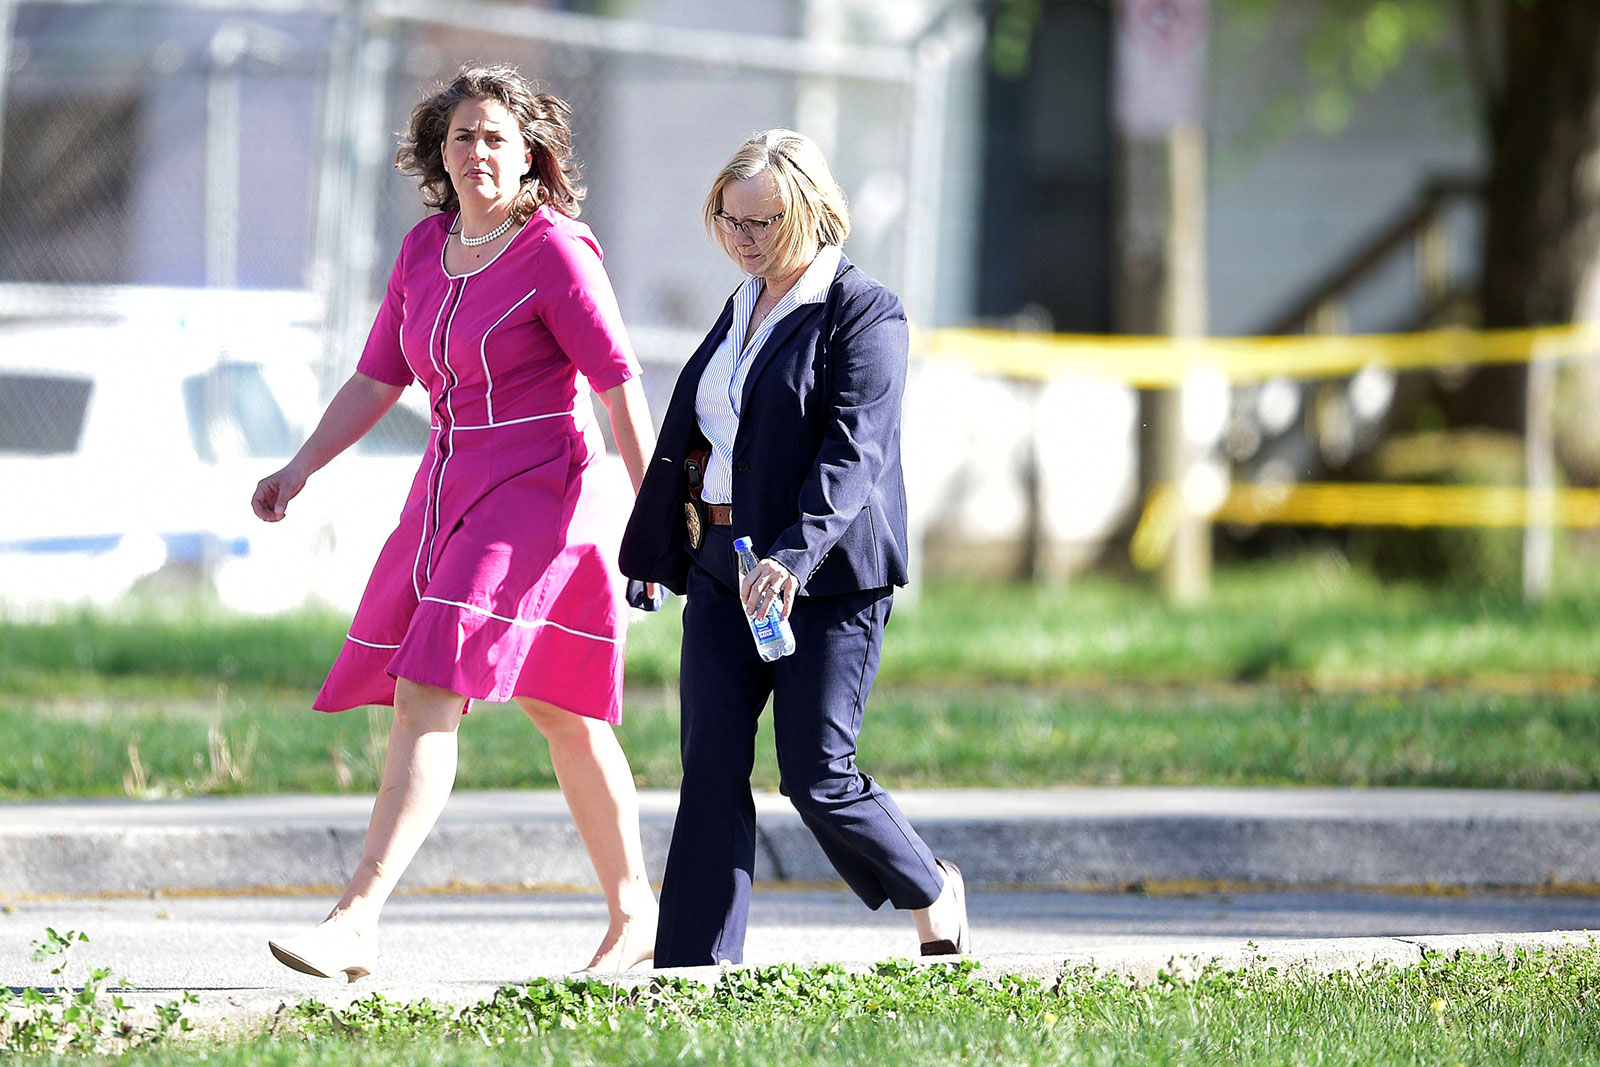 Knoxville Mayor Indya Kincannon, in pink, arrives at the scene of a shooting at Austin-East High School in Knoxville, Tennessee, on Monday, April 12.